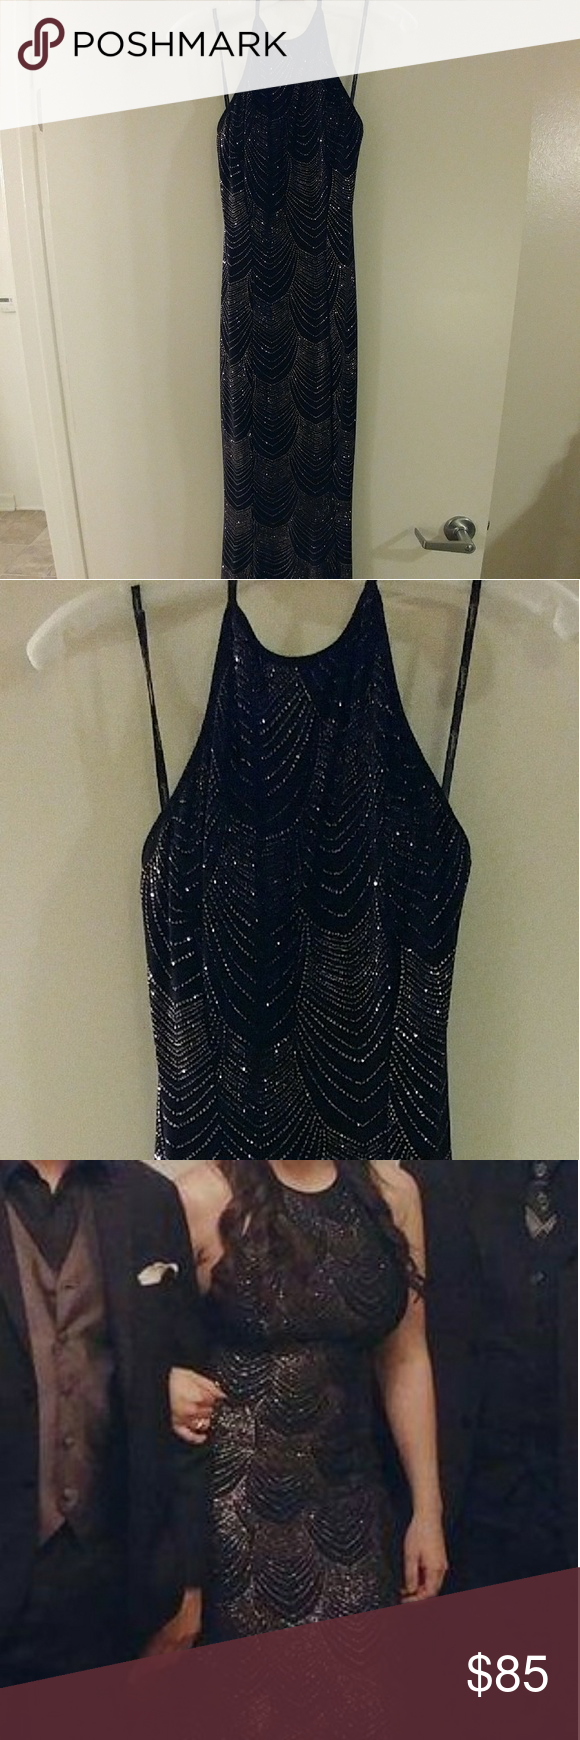 2b8272281fc6 Black and Gold Glitter Knit Halter Dress with Low Beautiful dress I wore  once as a